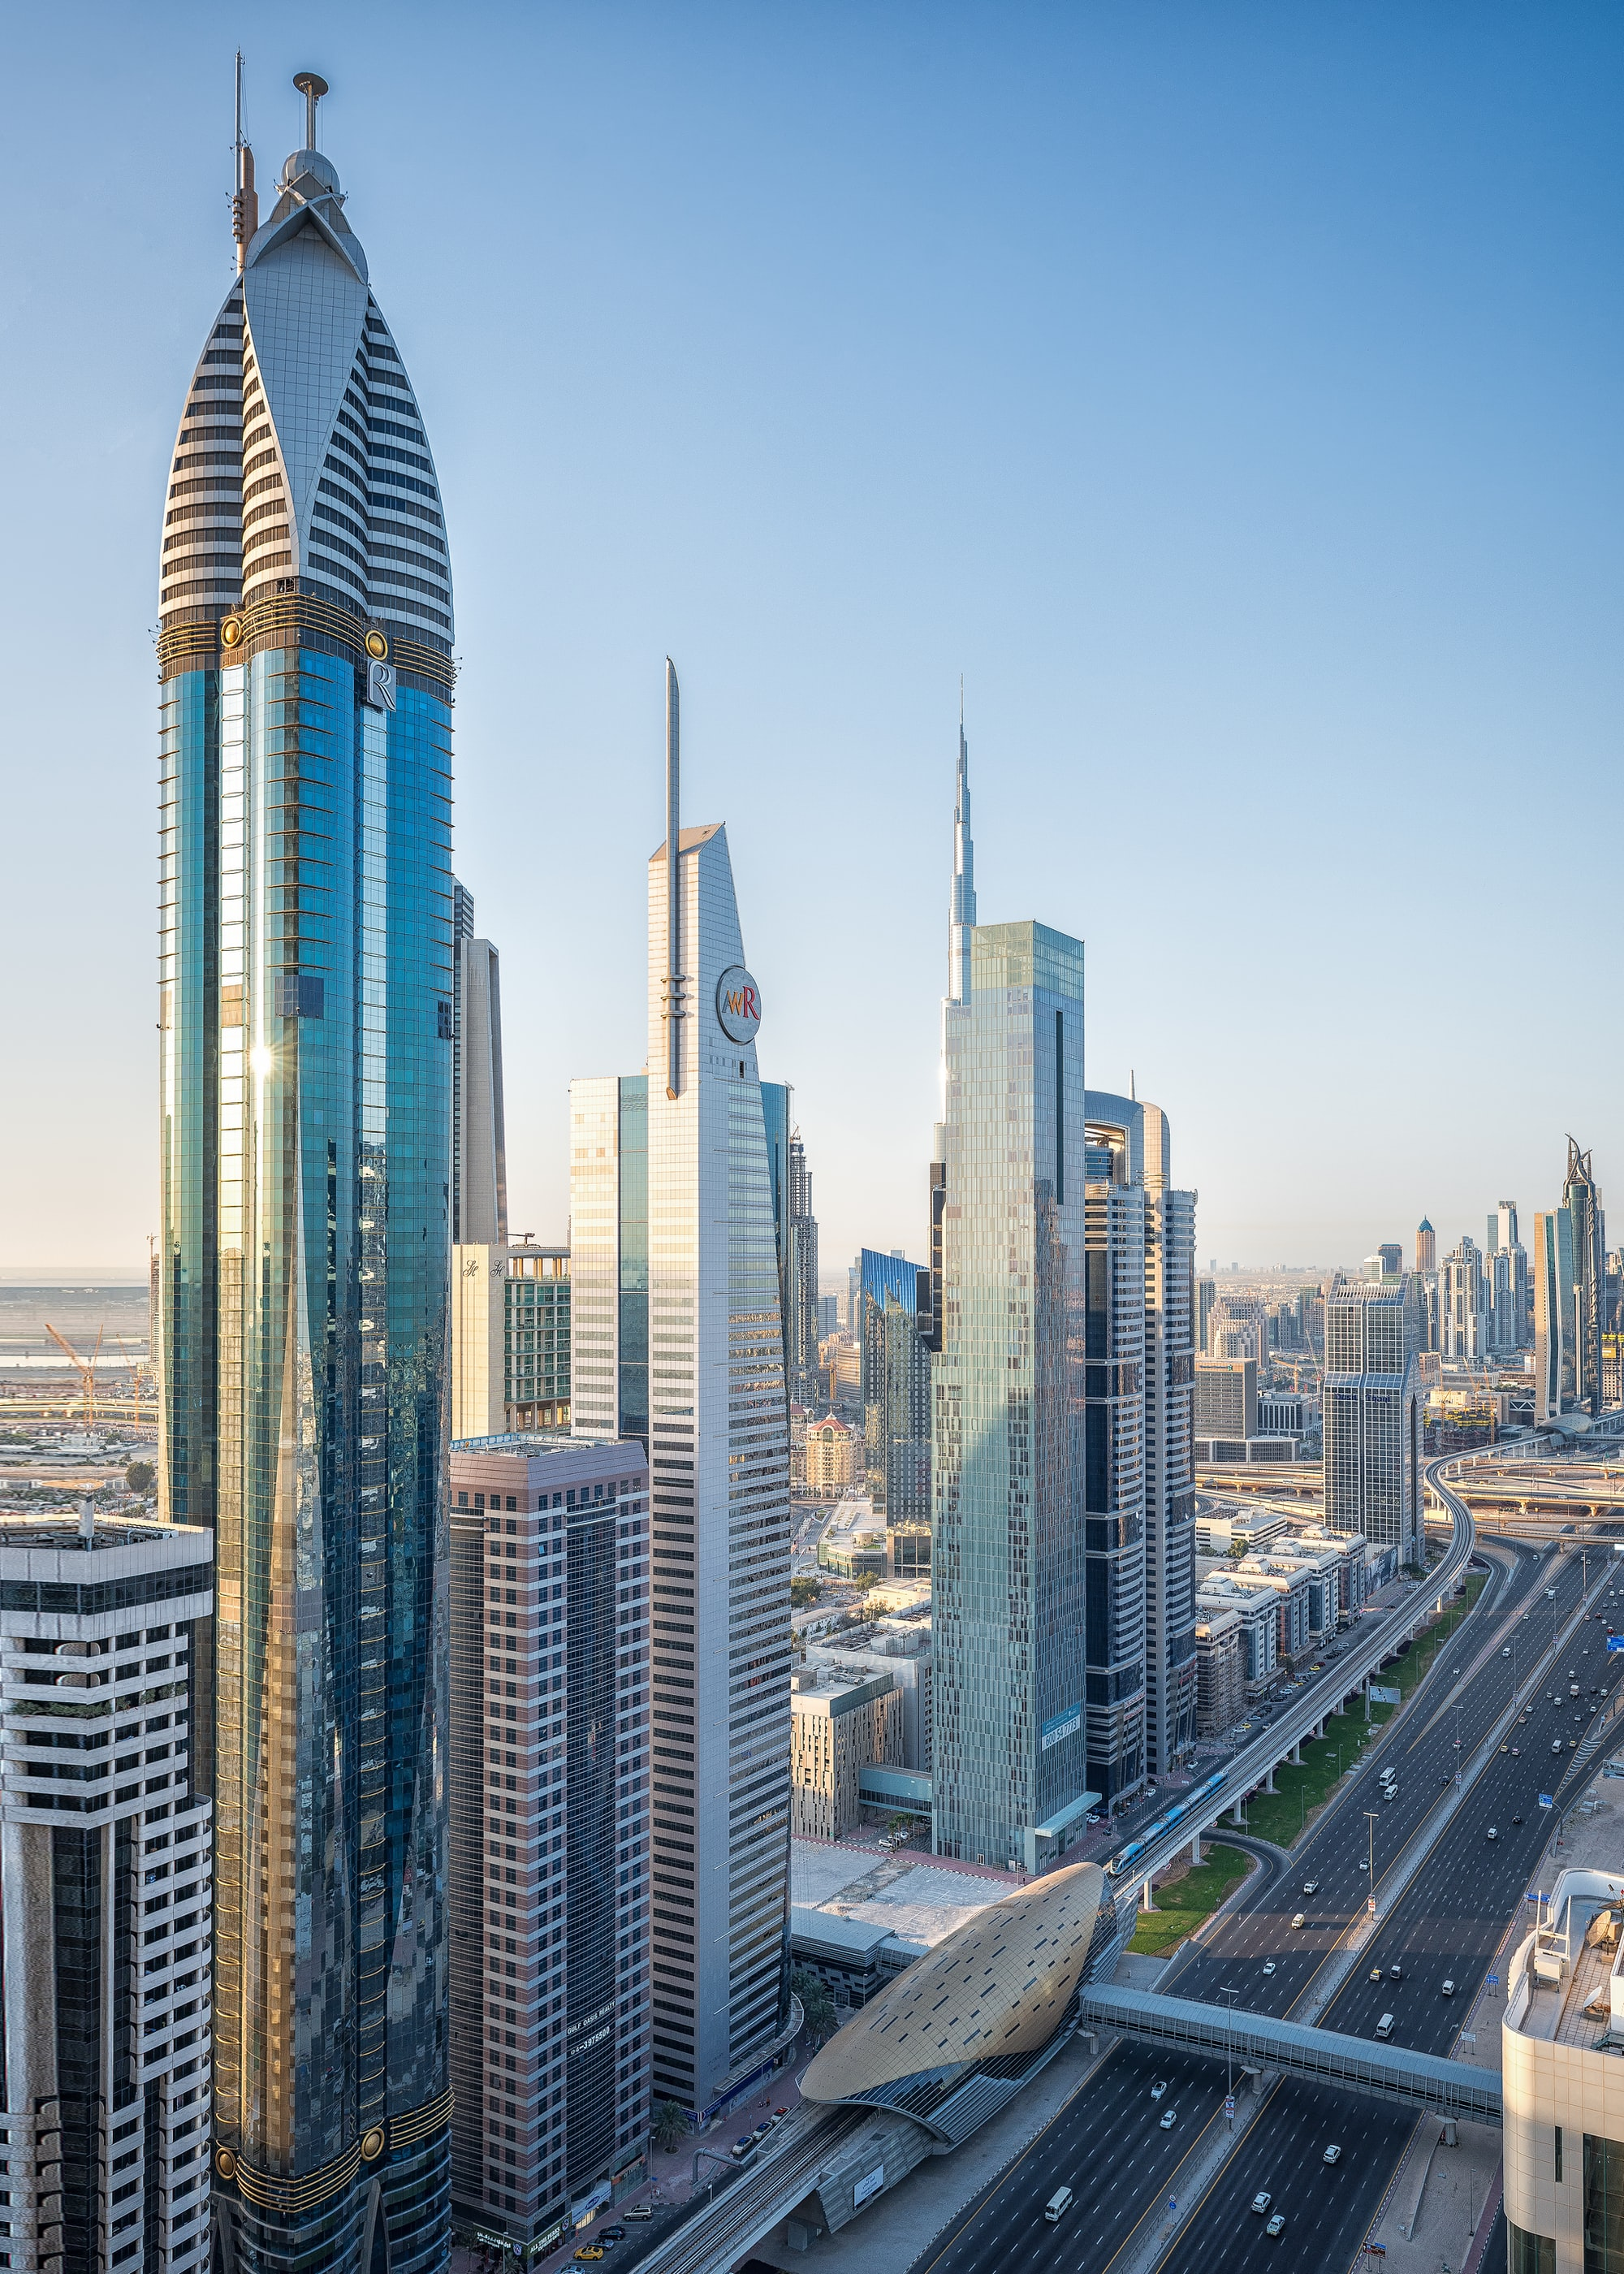 With a 12-hour layover in Dubai, even on very little rest, you're called out to explore the futuristic city that rises out of the sand seemingly in the middle of the desert.